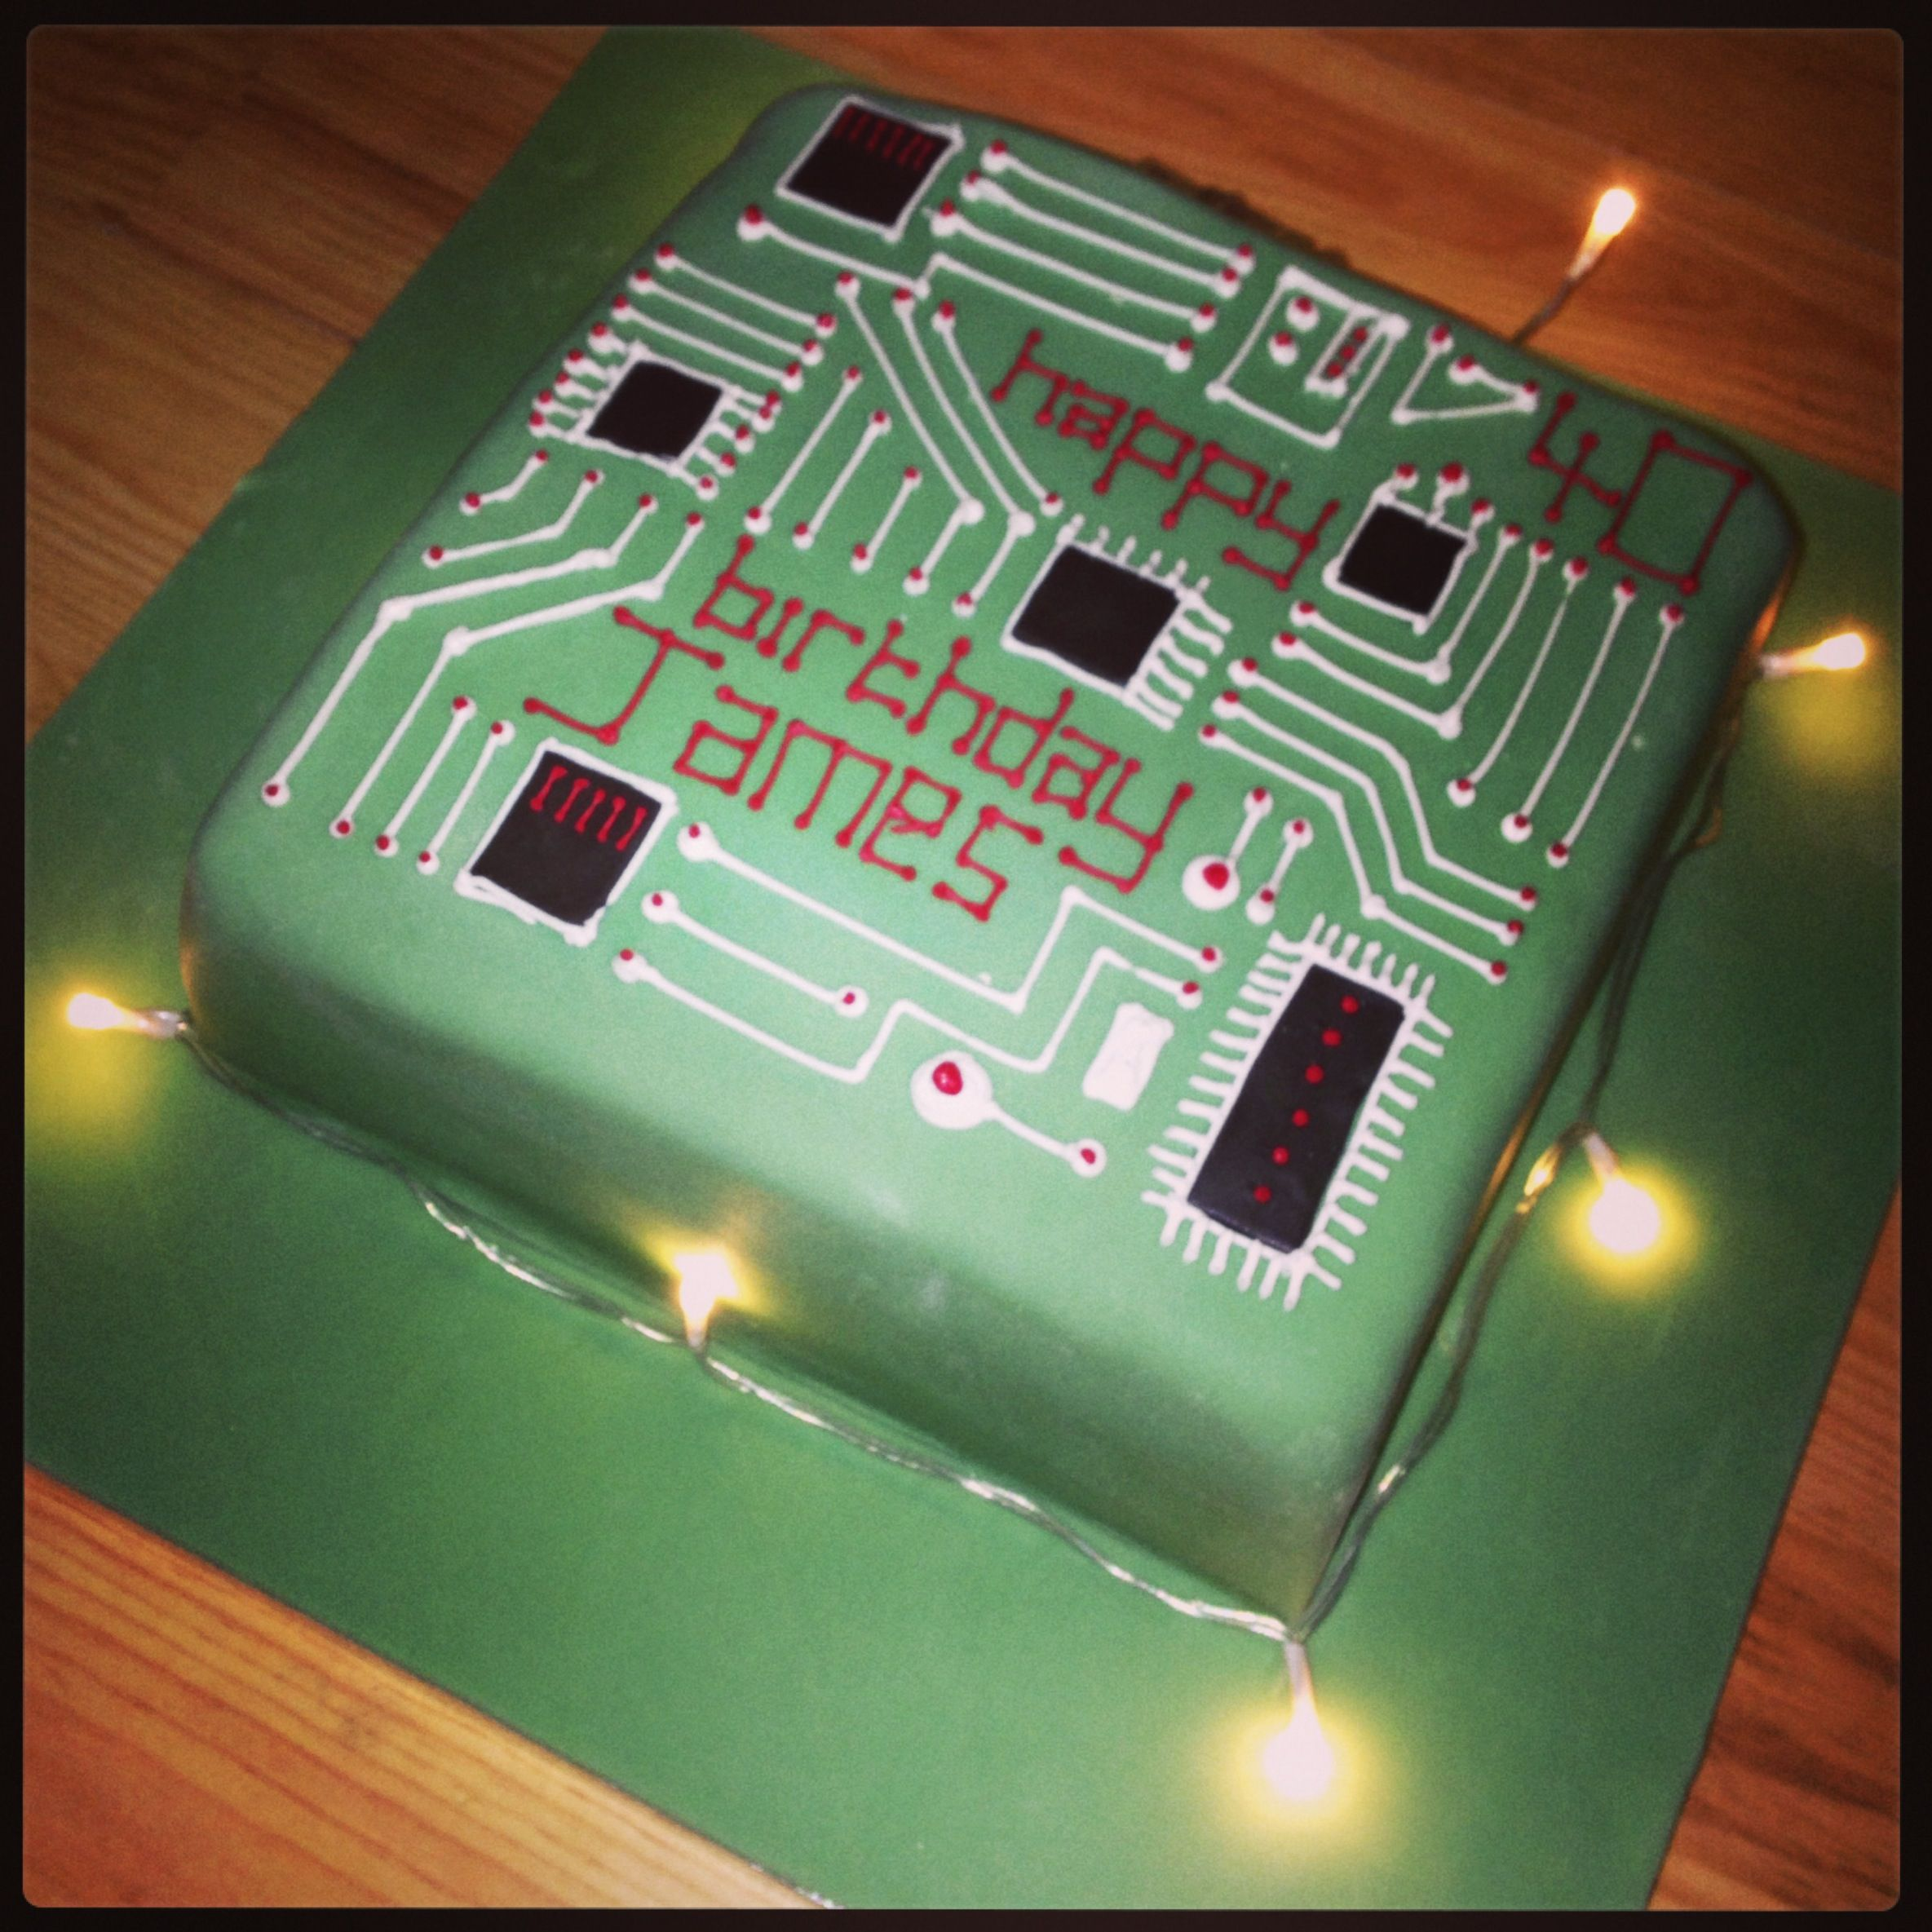 25 Best Ideas About Computer Cake On Pinterest: Circuit Board Cake